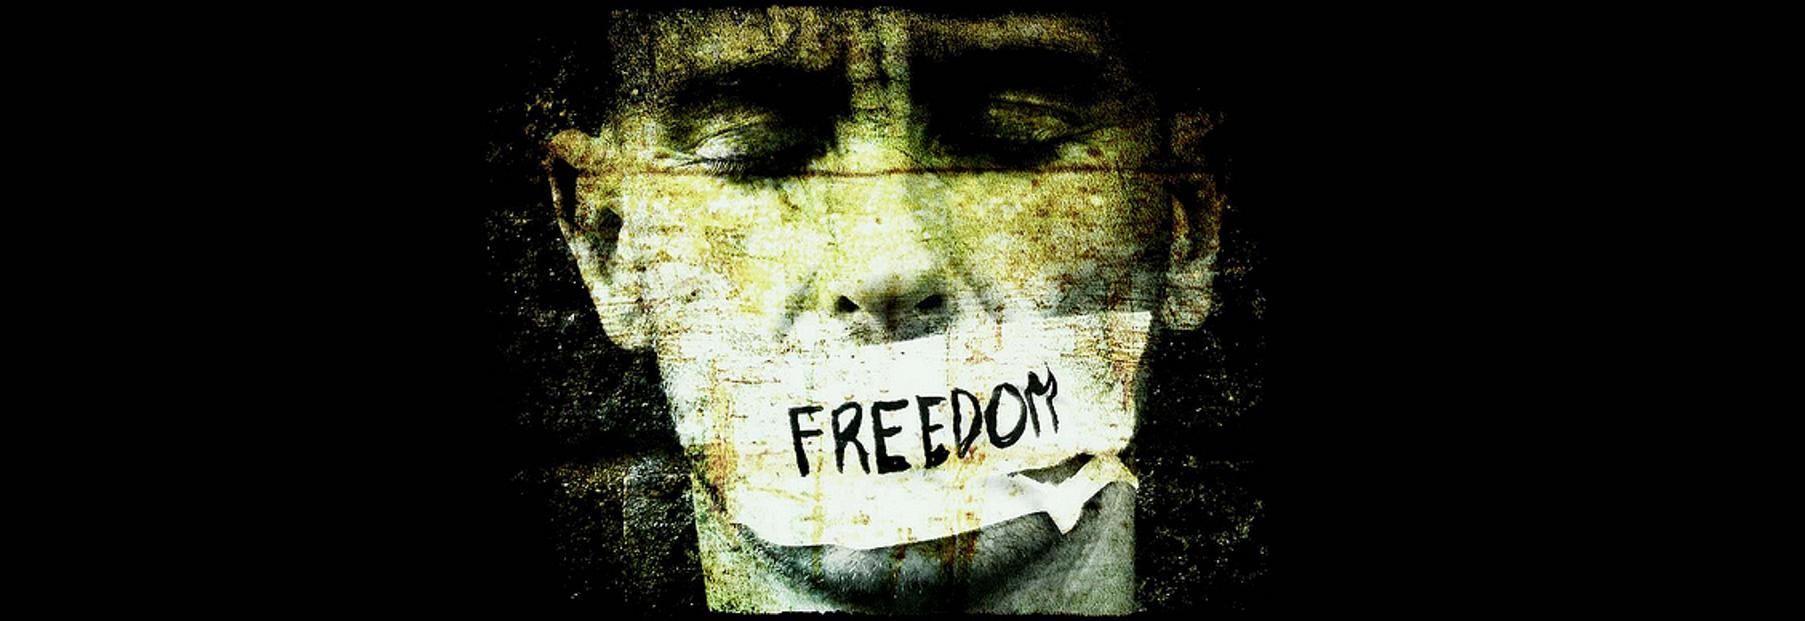 the question of whether censorship is freedom or suppression